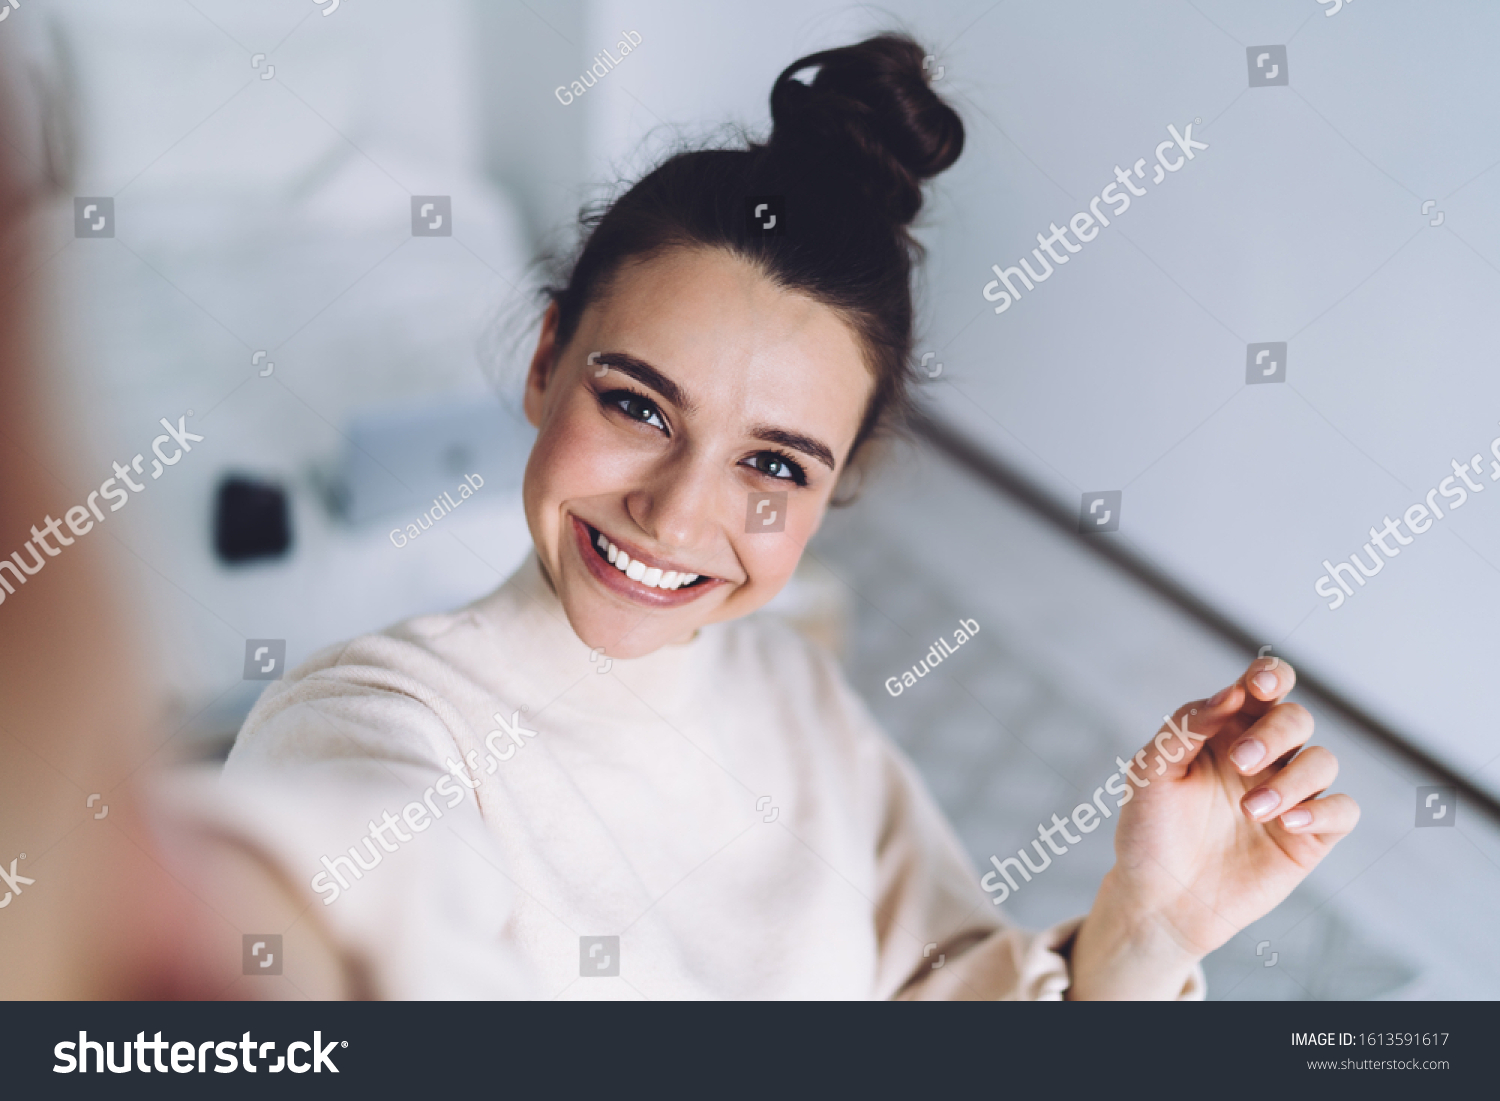 Pretty young female with big smile standing at bedroom after work with laptop and having fun taking light cheerful selfie on blurred background #1613591617